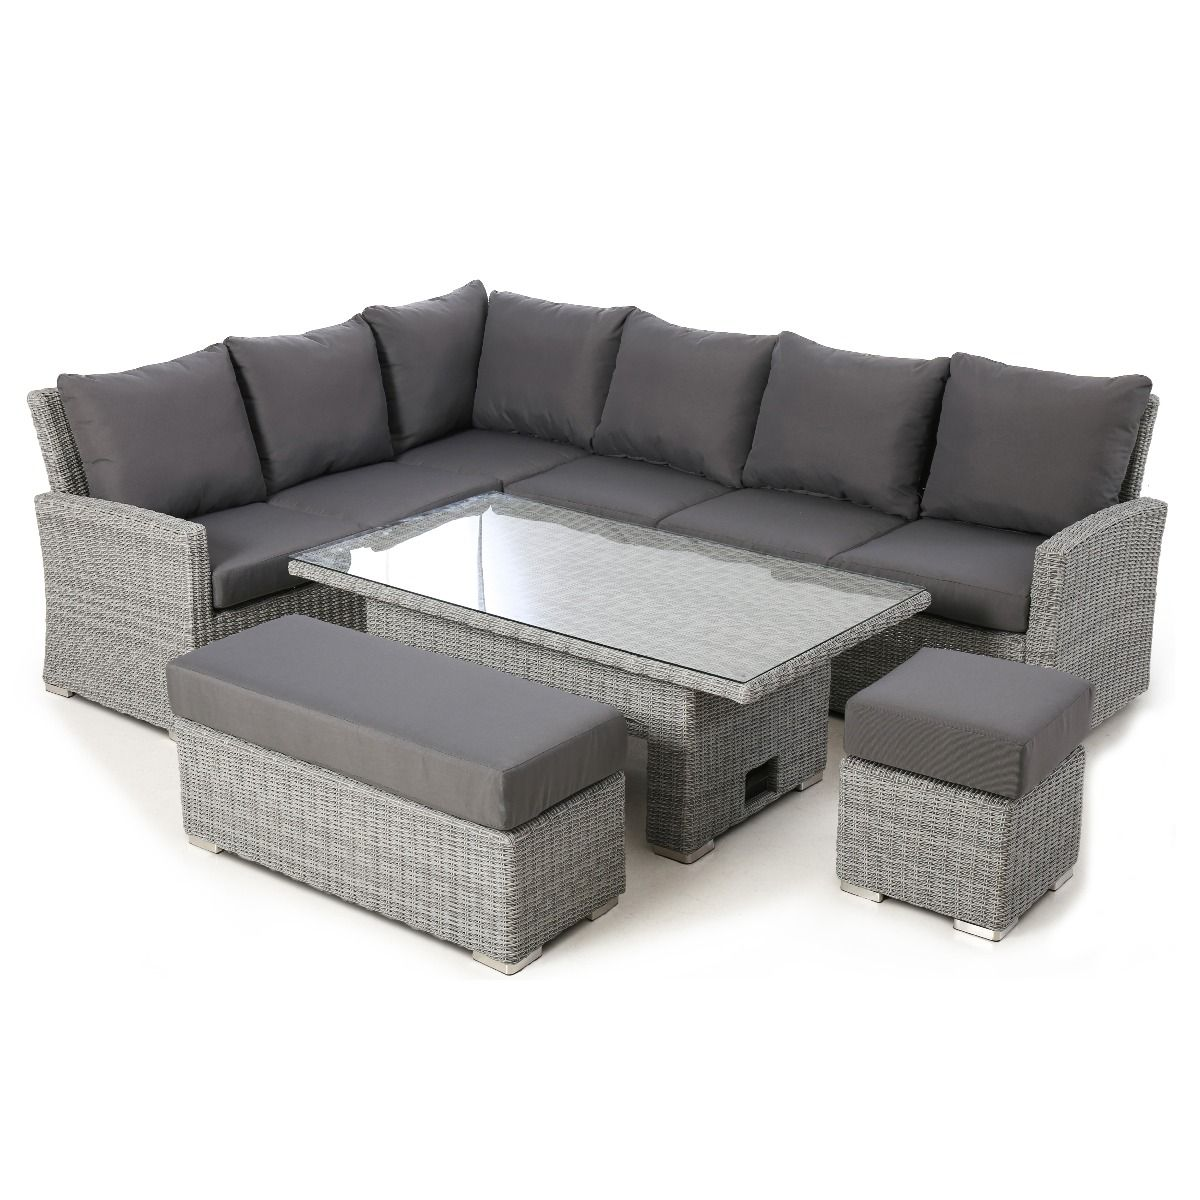 Maze Rattan Ascot Corner Dining Set With Rising Table Grey In 2020 Corner Dining Set Dining Sofa Rattan